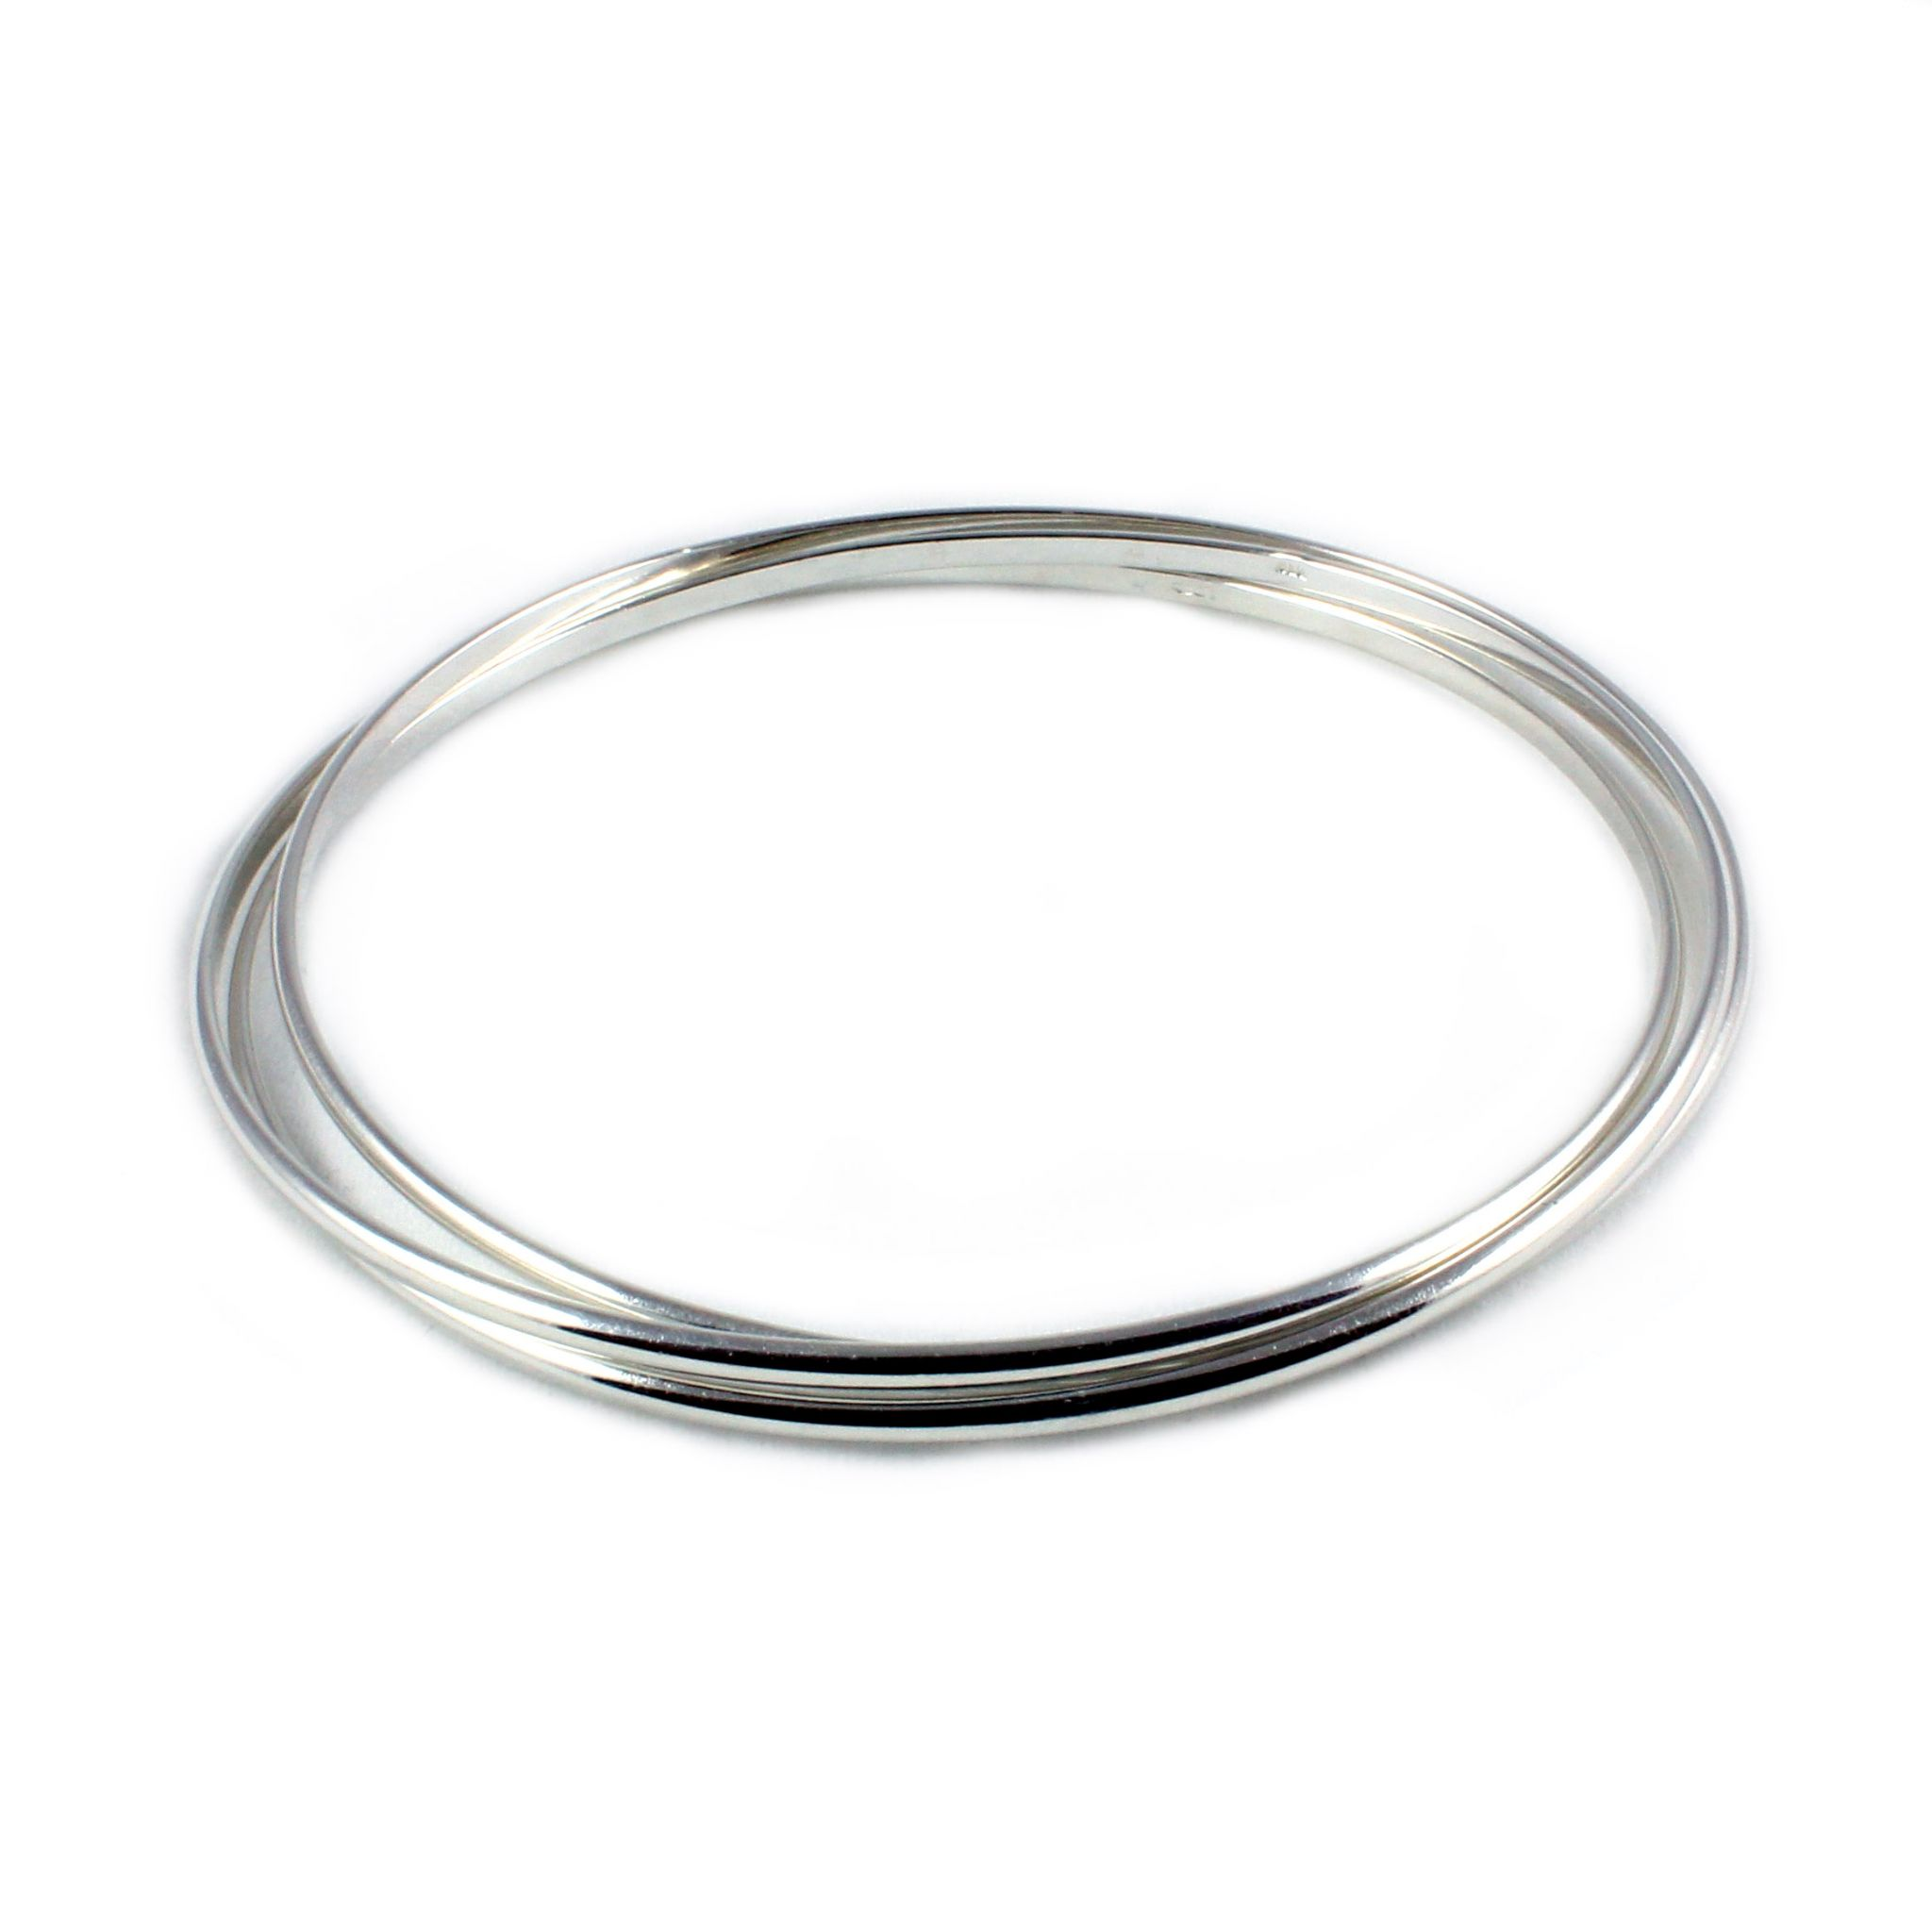 churi set karizmatic bangle bracelets bangles silver s sterling